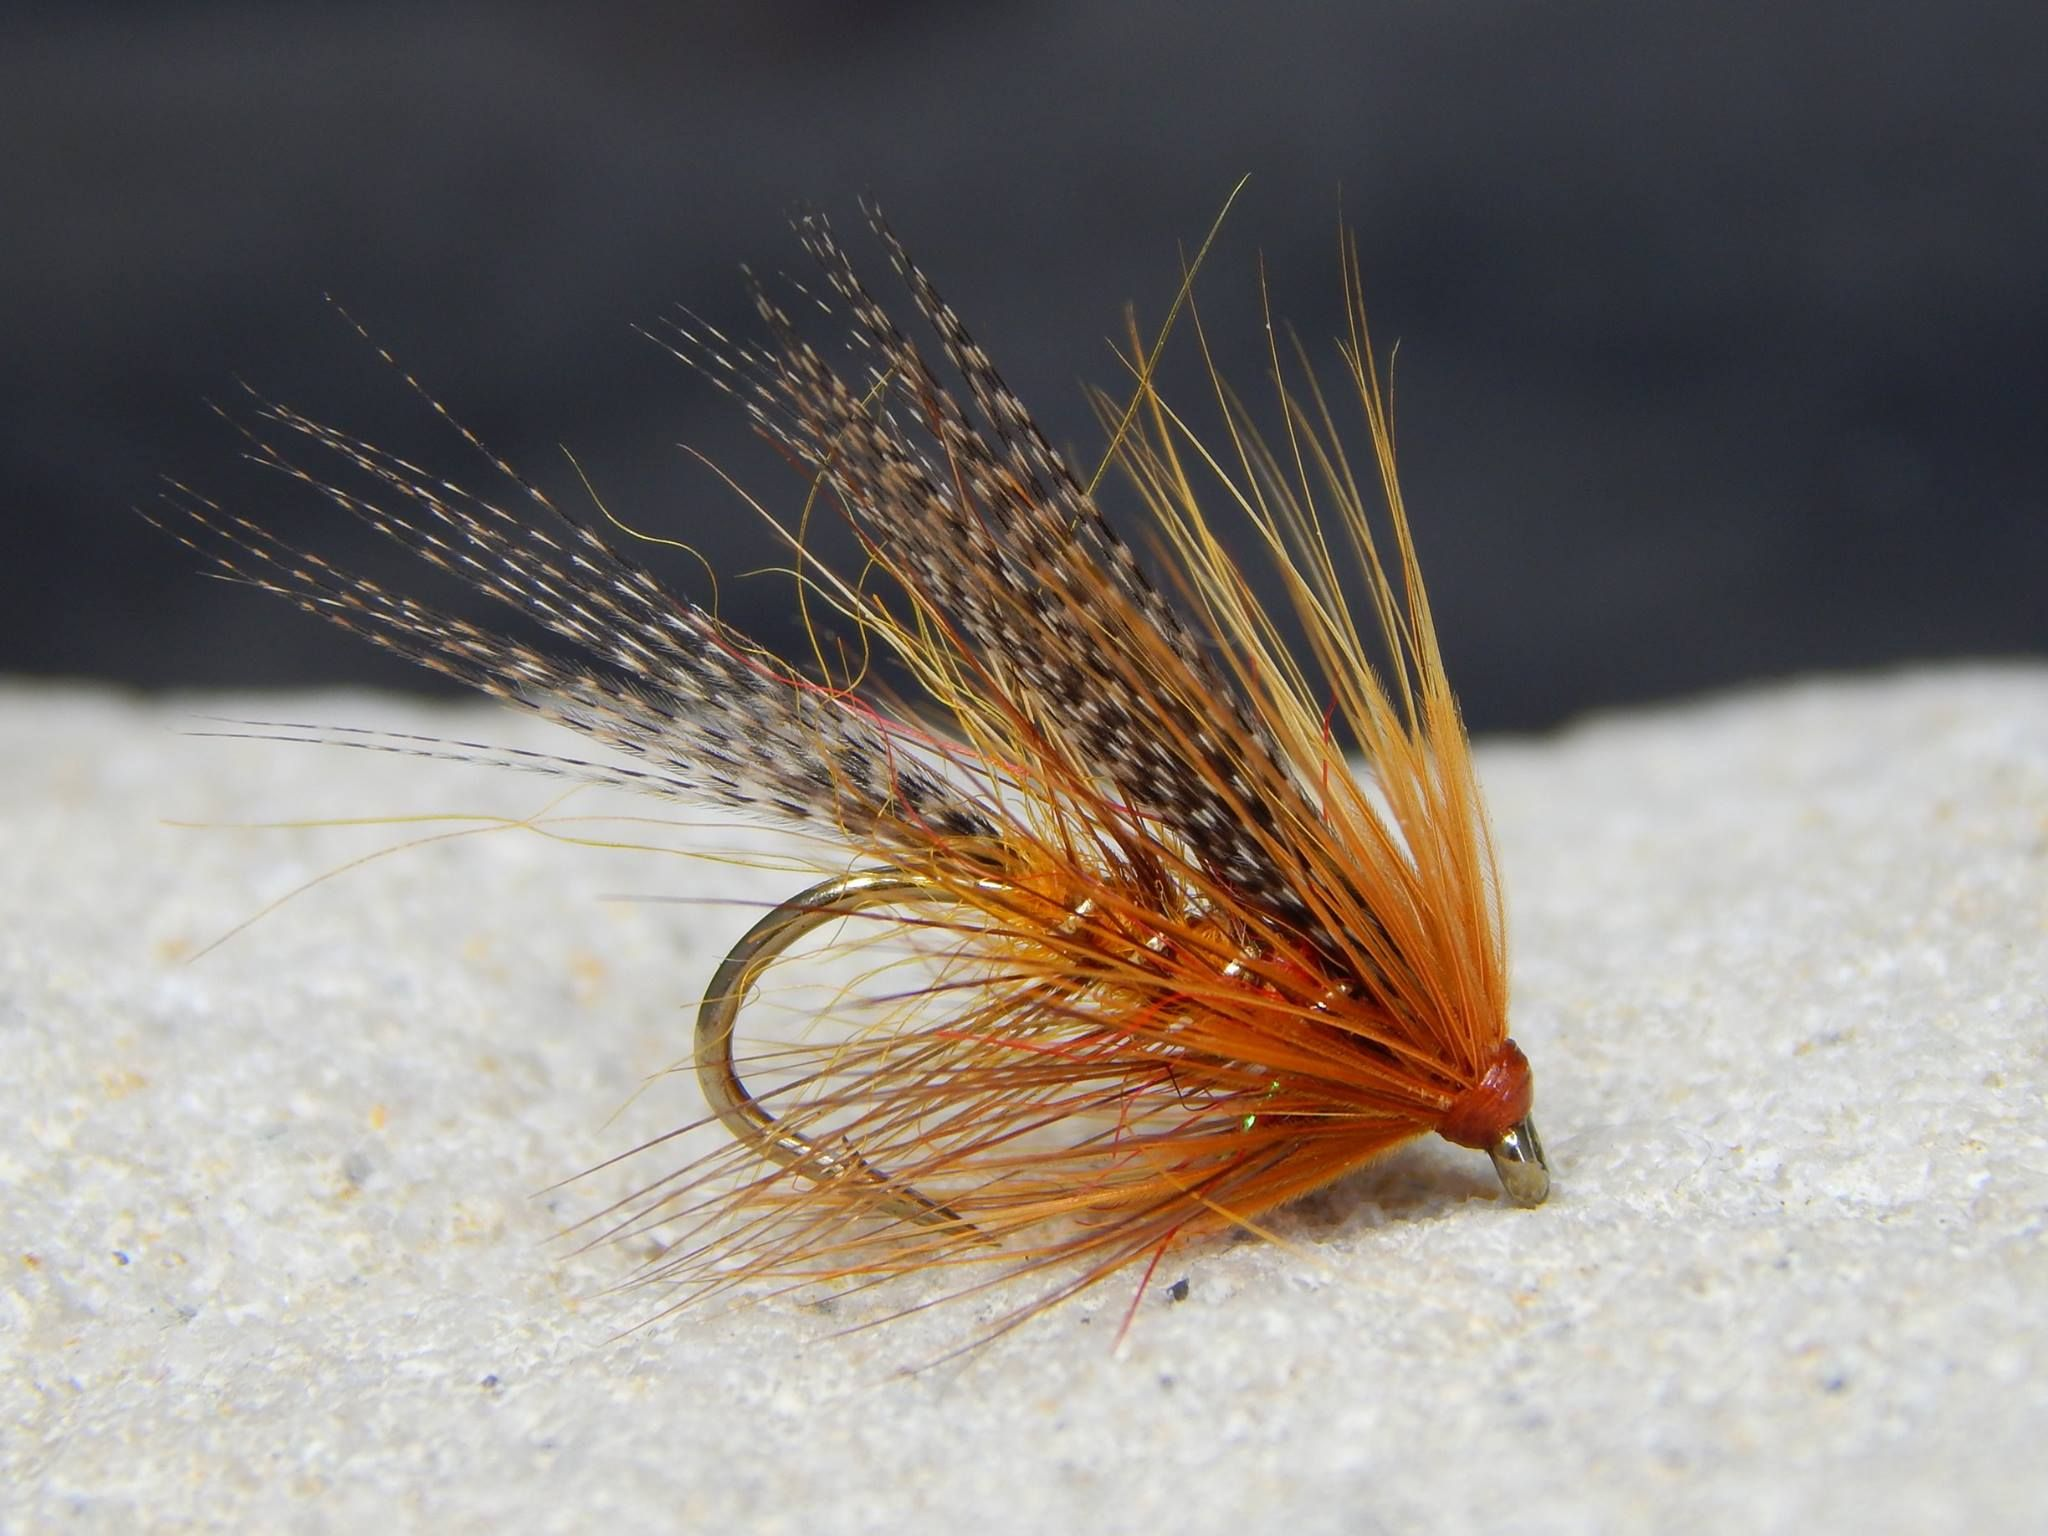 By Paul Caslin Fly Fishing Flies Trout Fly Fishing Lures Fly Tying